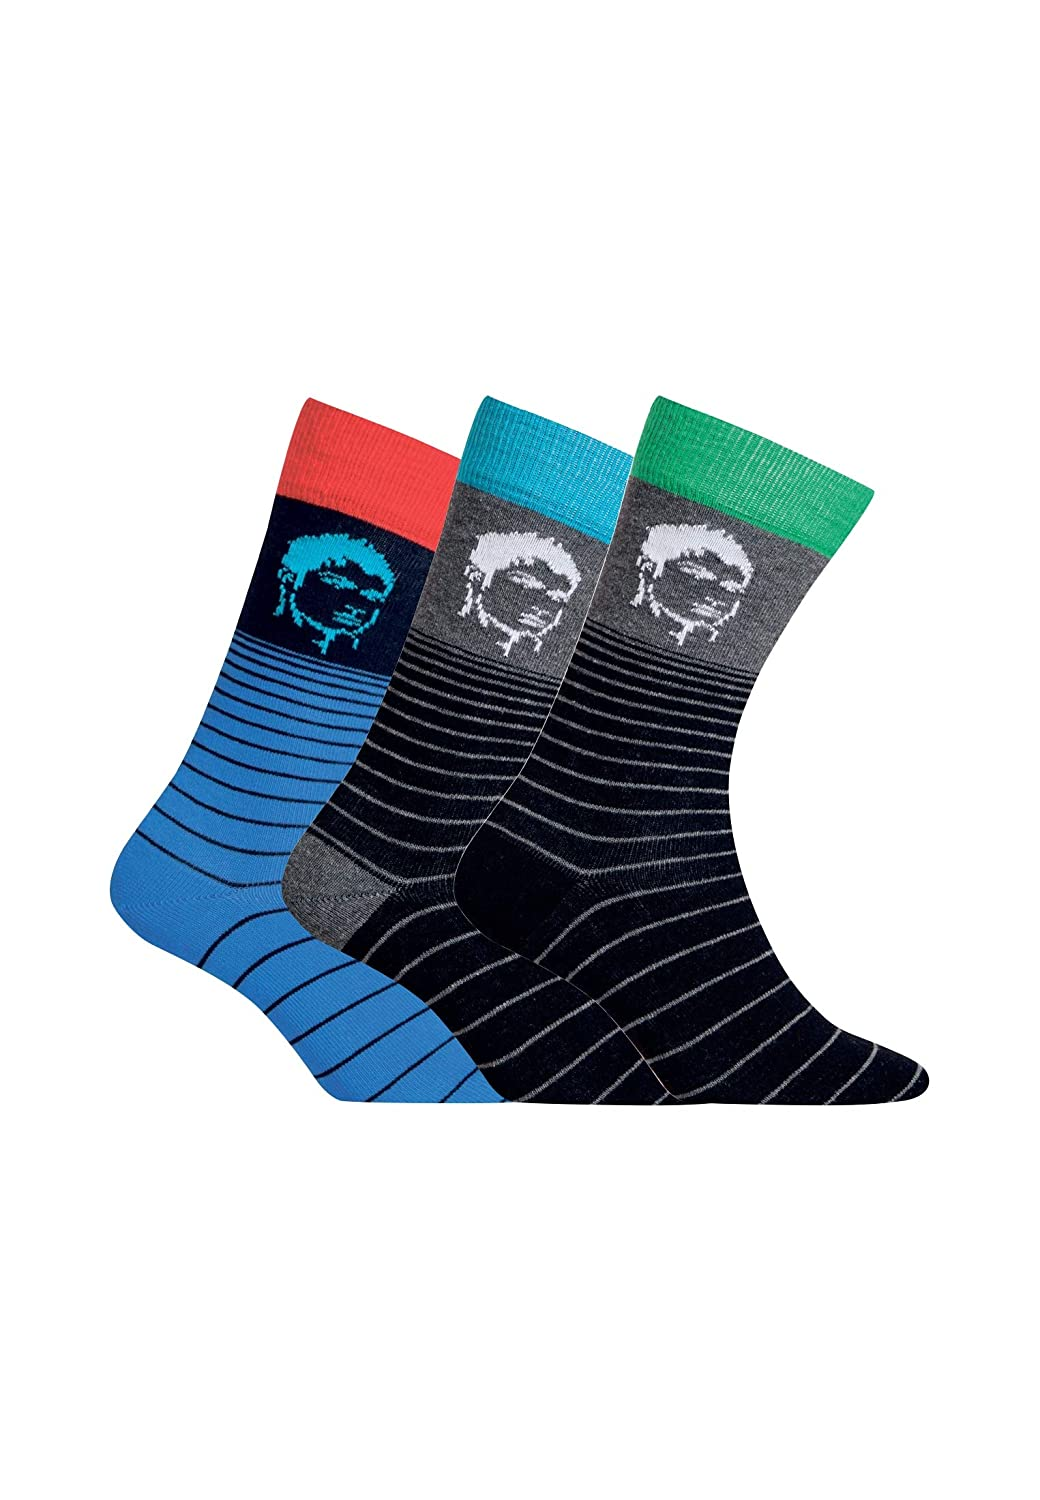 65f4f8f5377 CR7 Cristiano Ronaldo - BOYS - socks for boys - 3-Pack - Available in  different sizes and designs